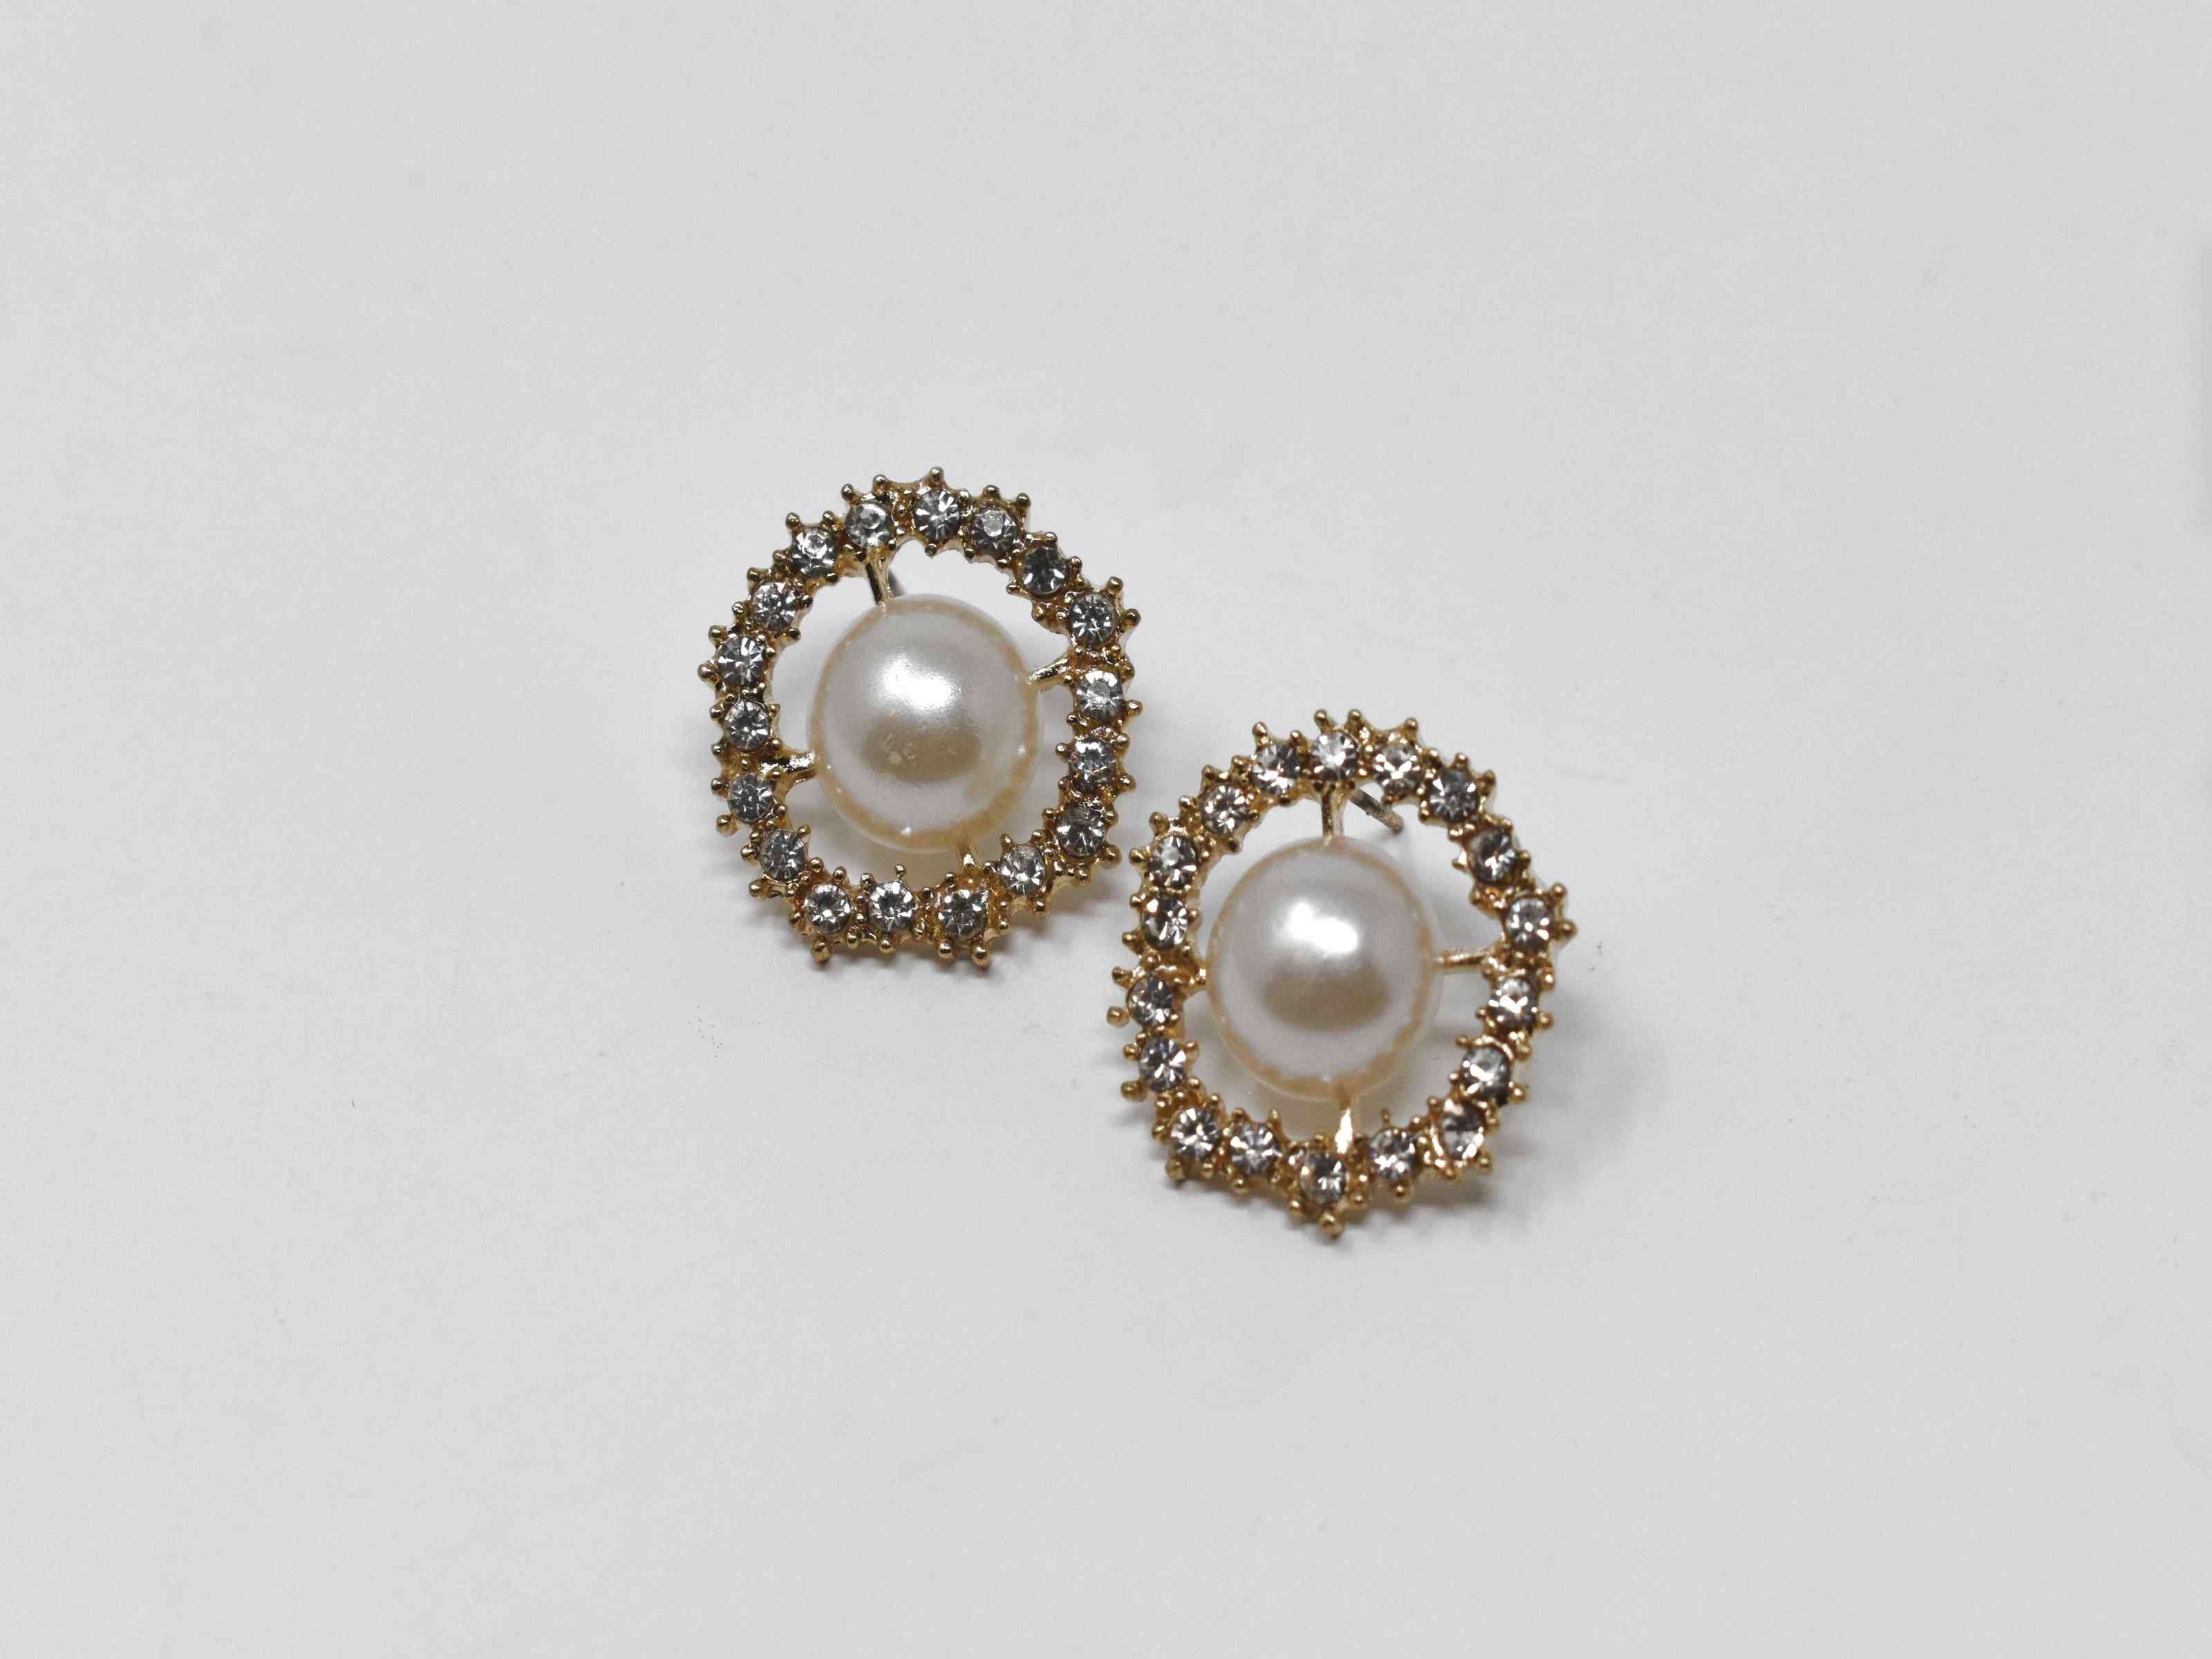 Our dietes earrings are a must have staple with a burst of sparkle. These earrings are a gold tone with a pearl core surrounded by a beautiful halo of stones. They are 3/4 inches in length with a push back clasp.